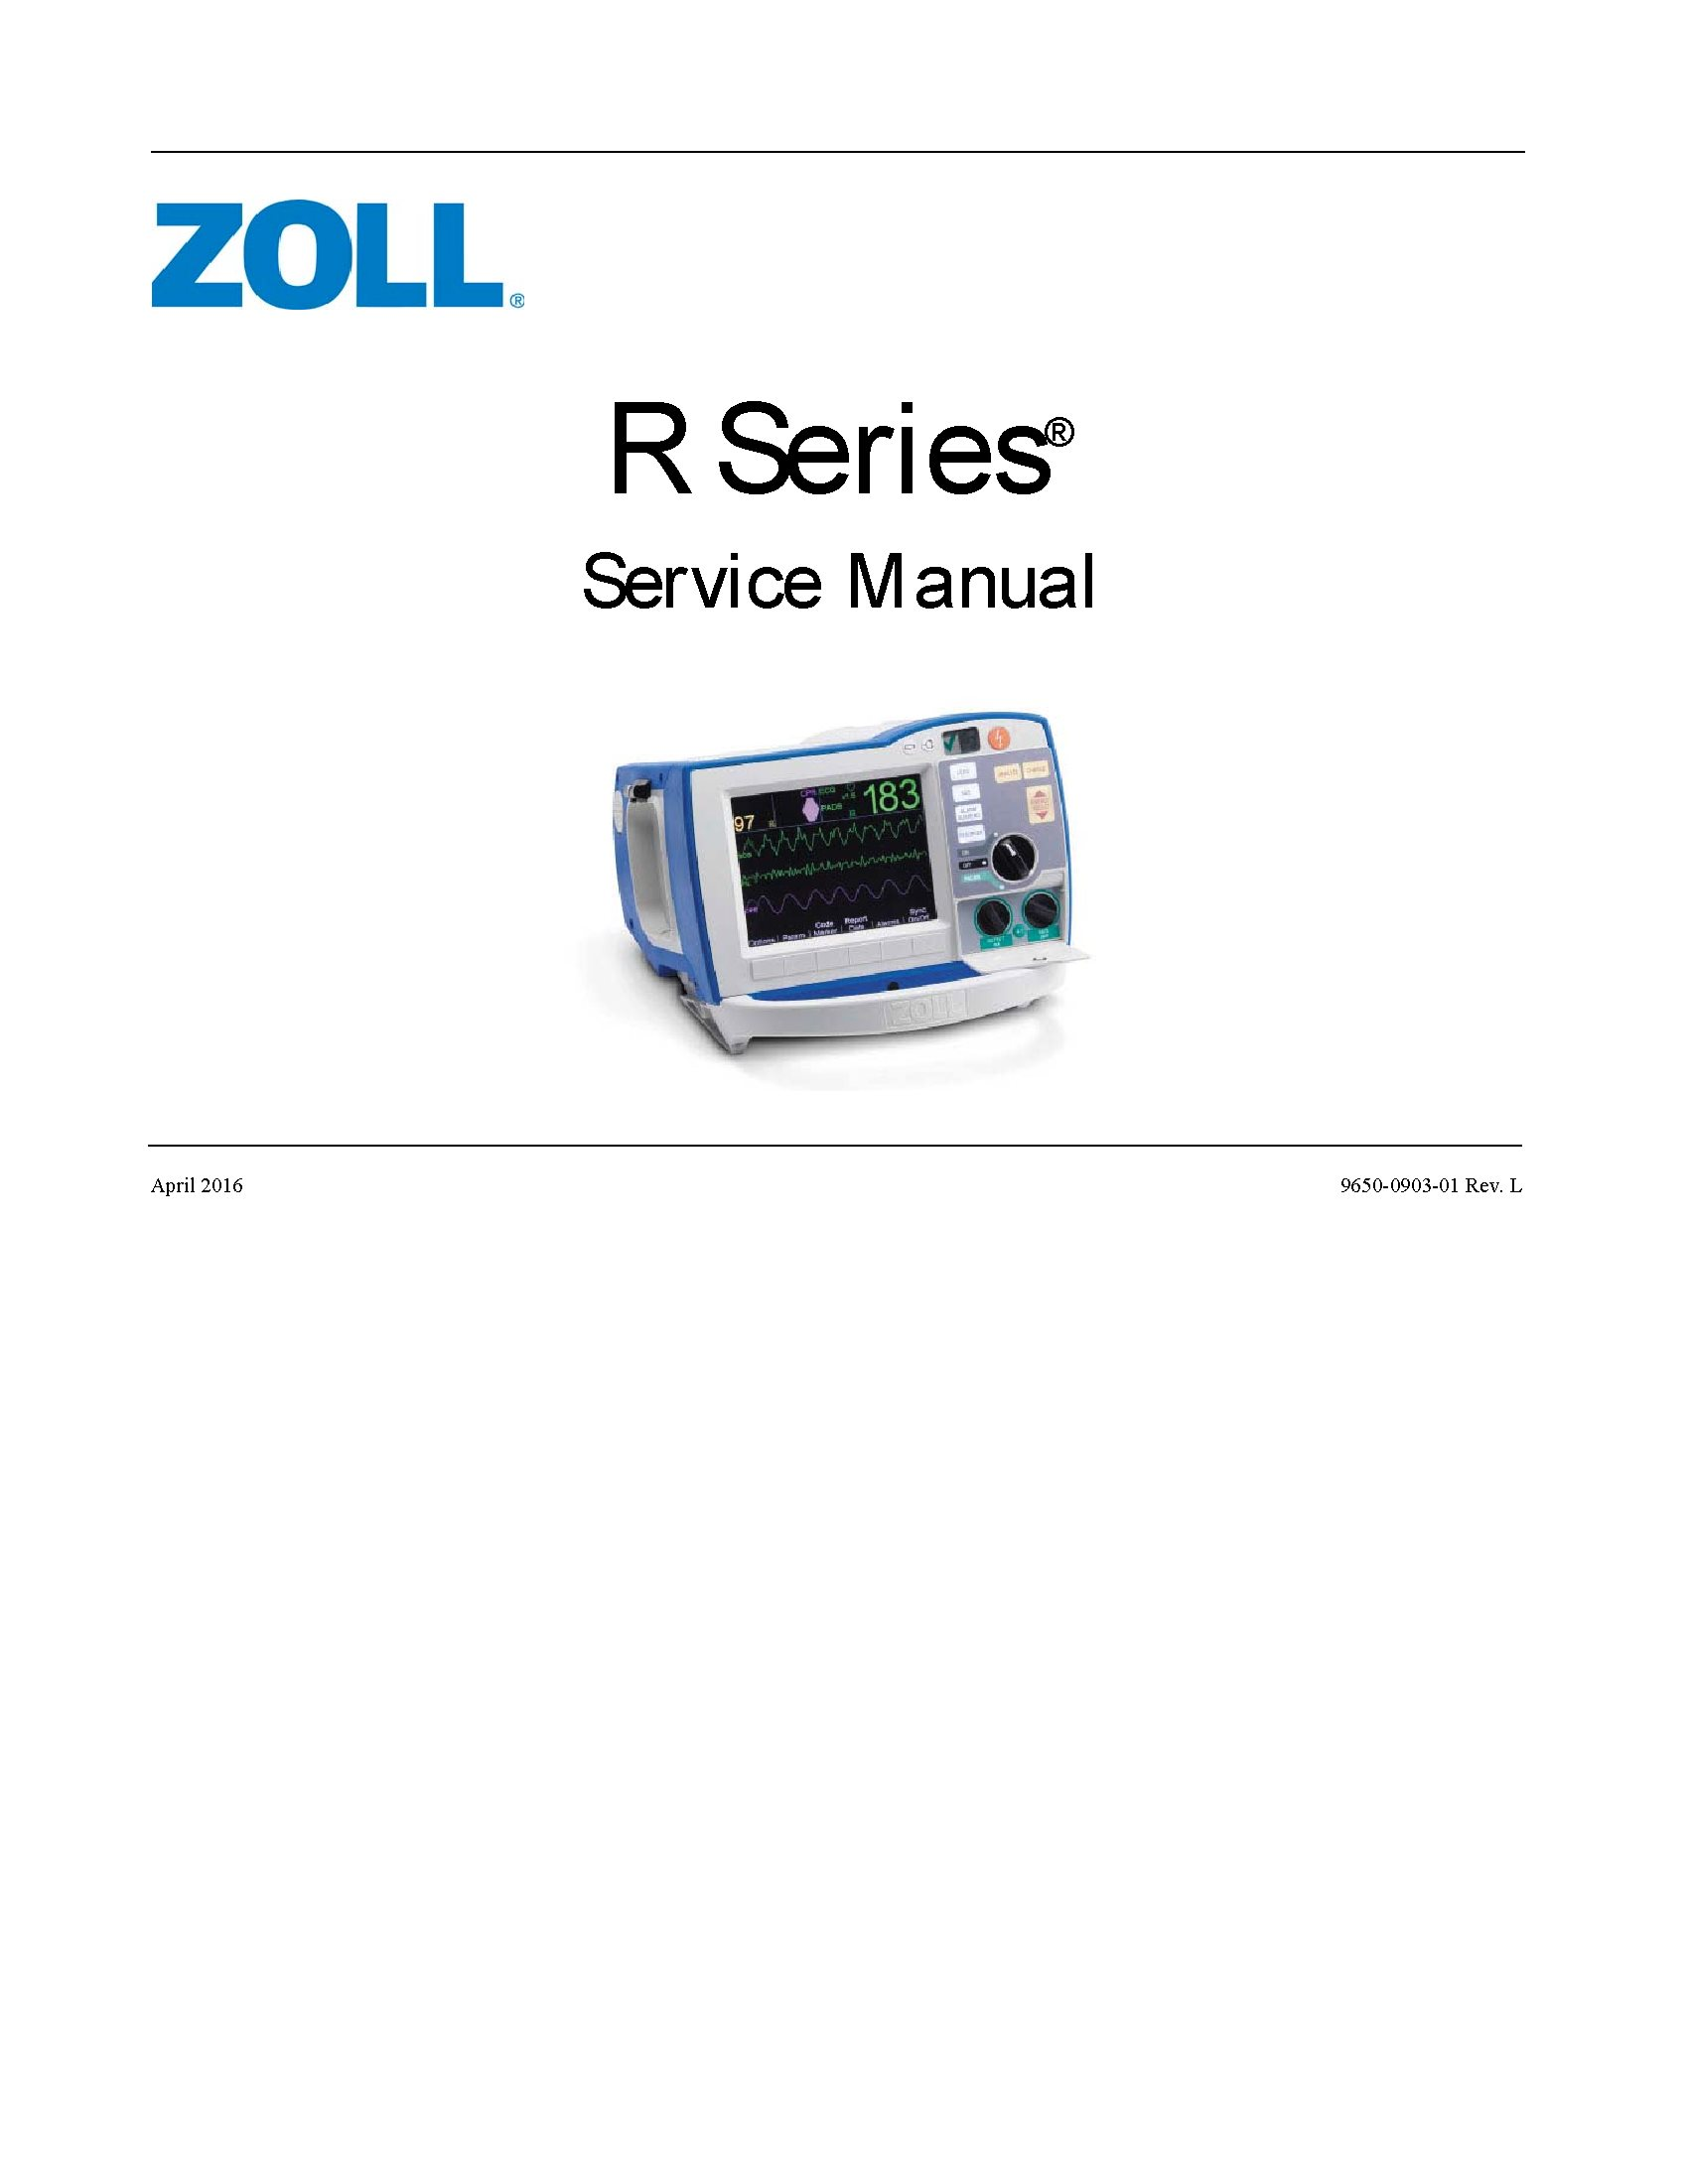 Zoll R Service manual